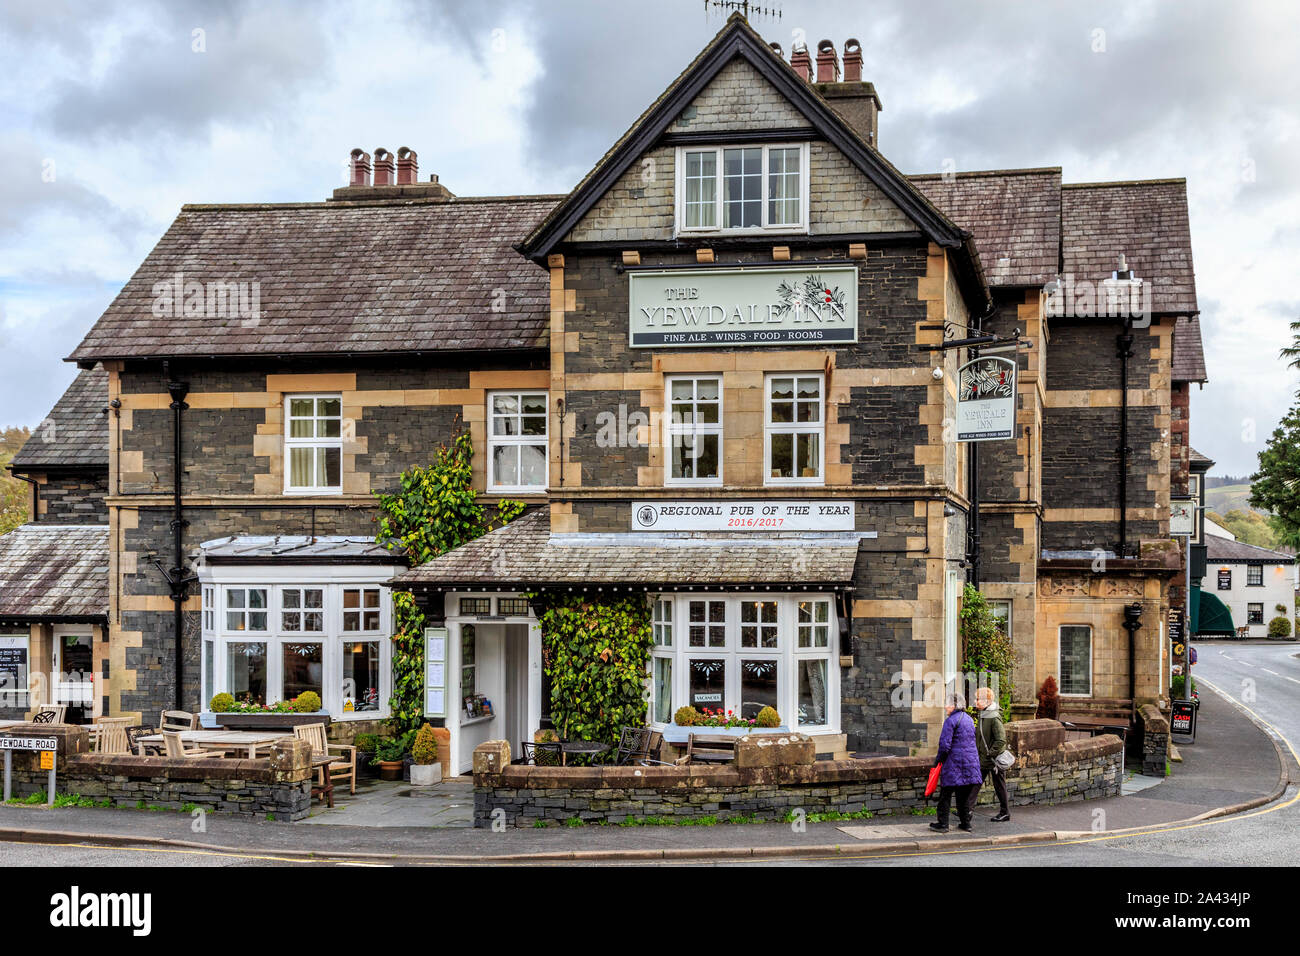 the yewdale inn, coniston town centre, lake district national park, cumbria, england, uk gb Stock Photo